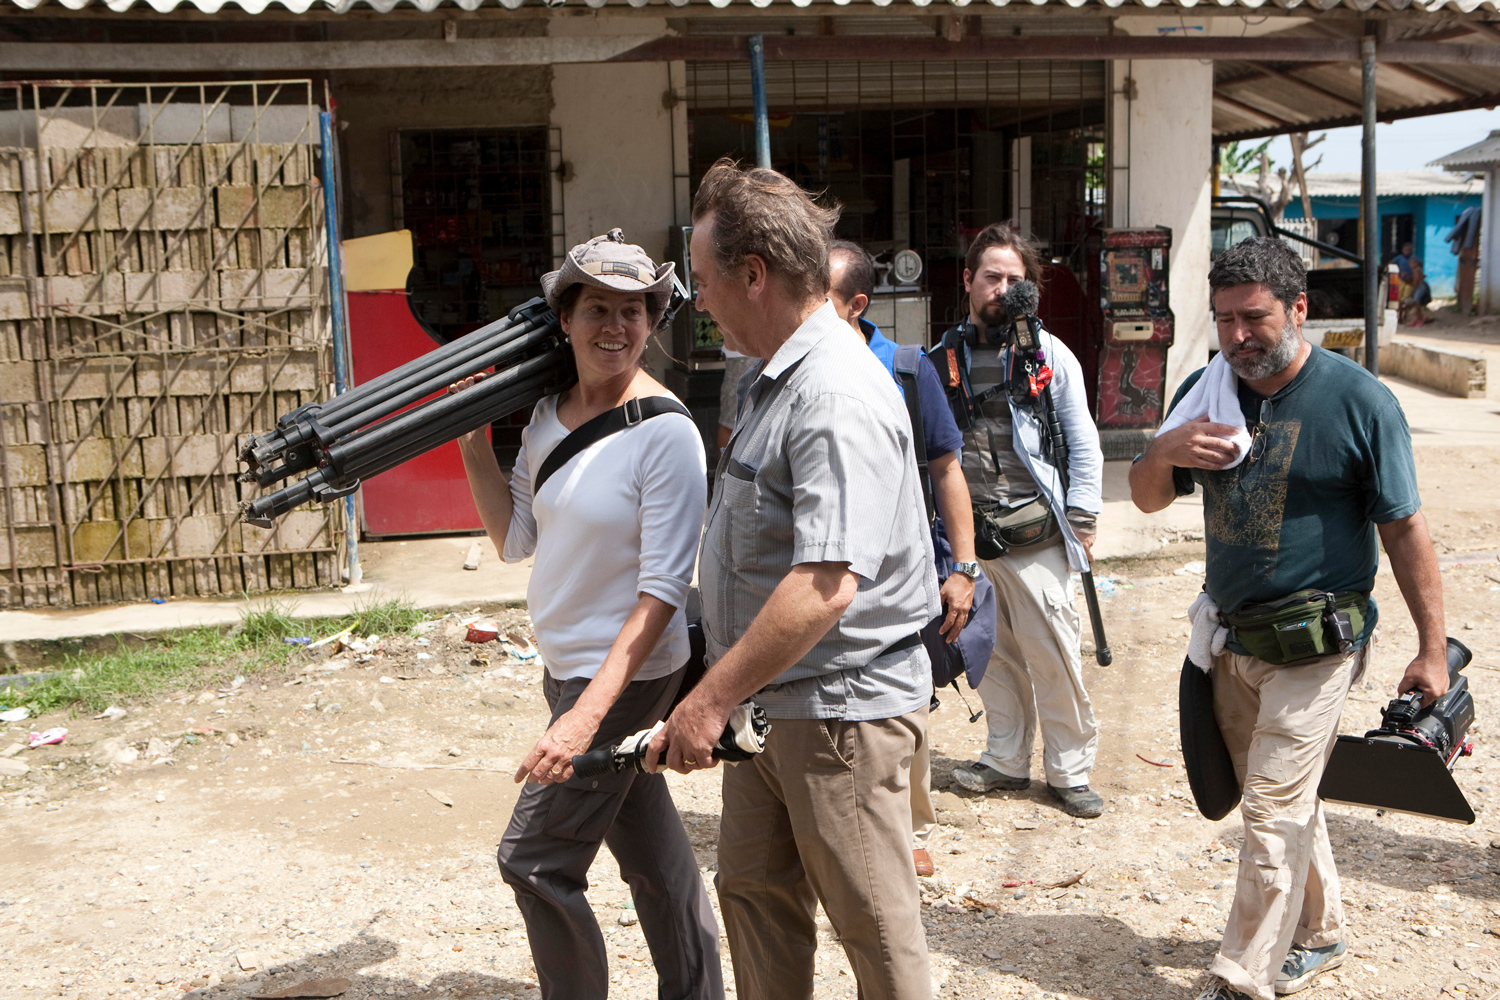 Pamela Yates and Paco de Onís on location in Colombia. Photo credit: Patricia Rincón-Mautner